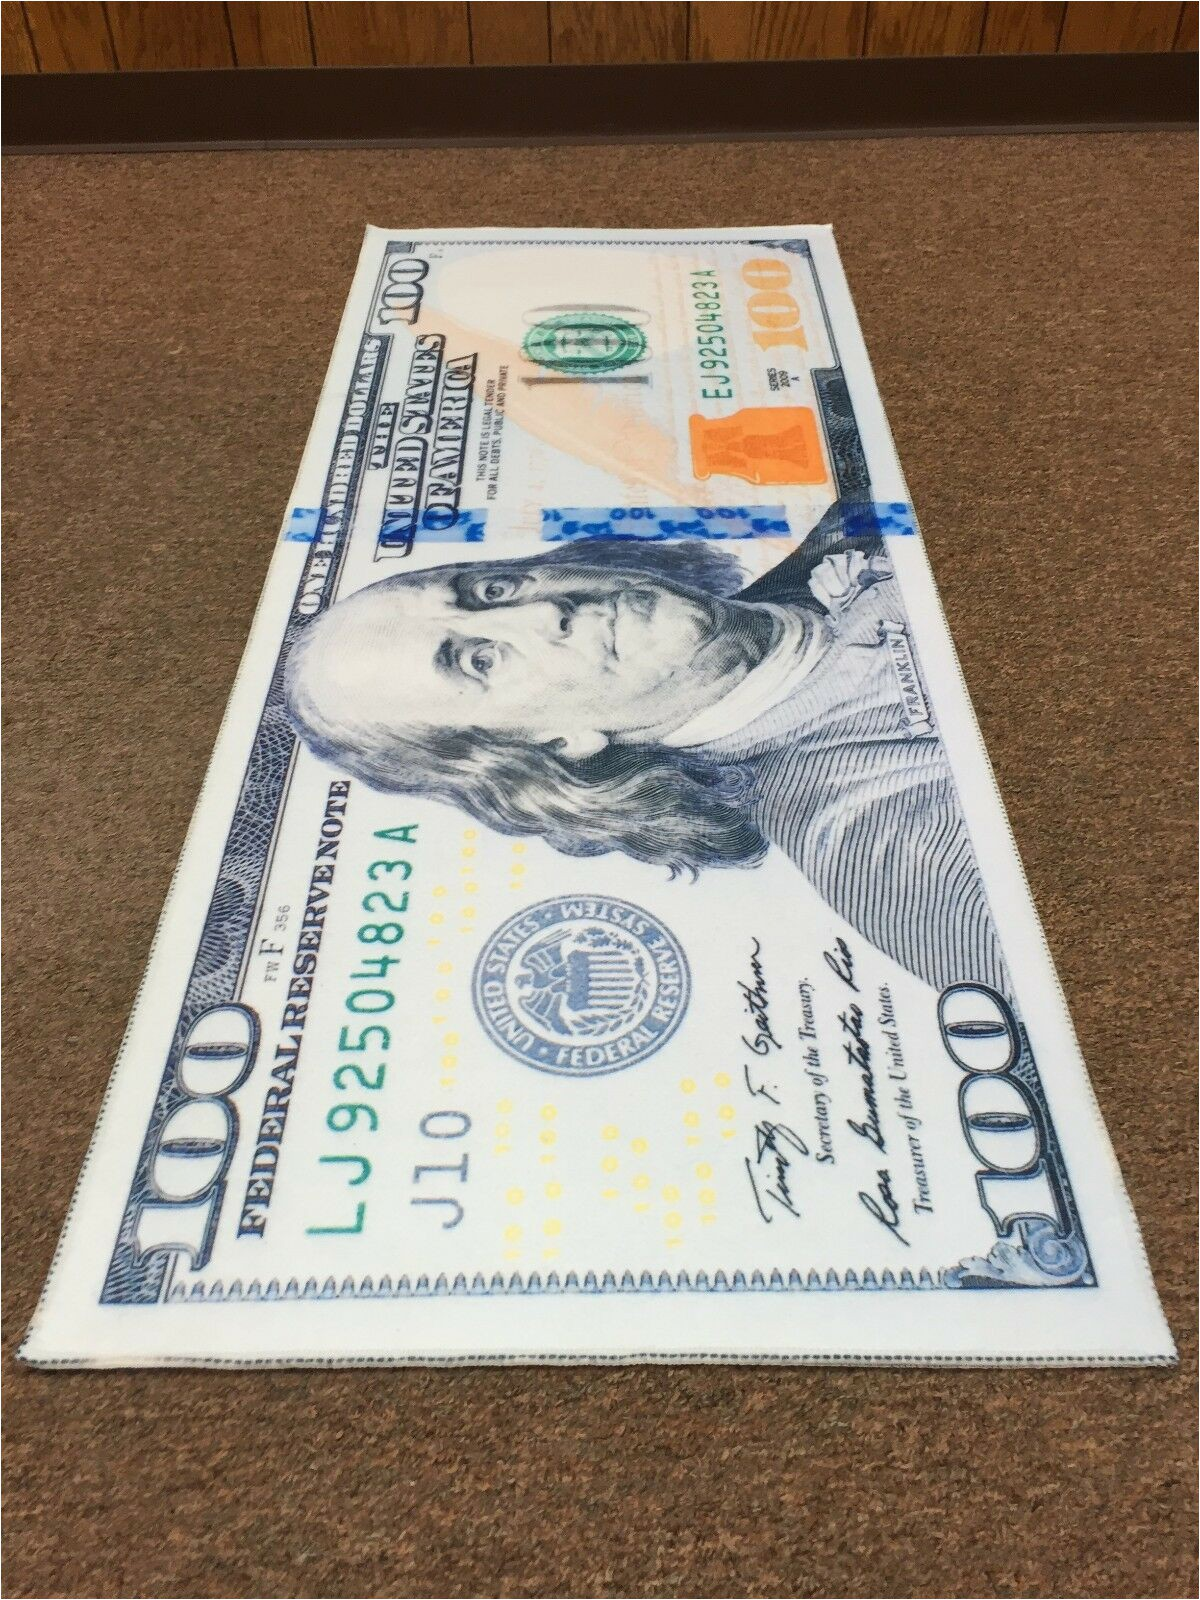 Area Rugs Under 100 Dollars area Rugs New E Hundred Dollar 100 Bill Print No In Home